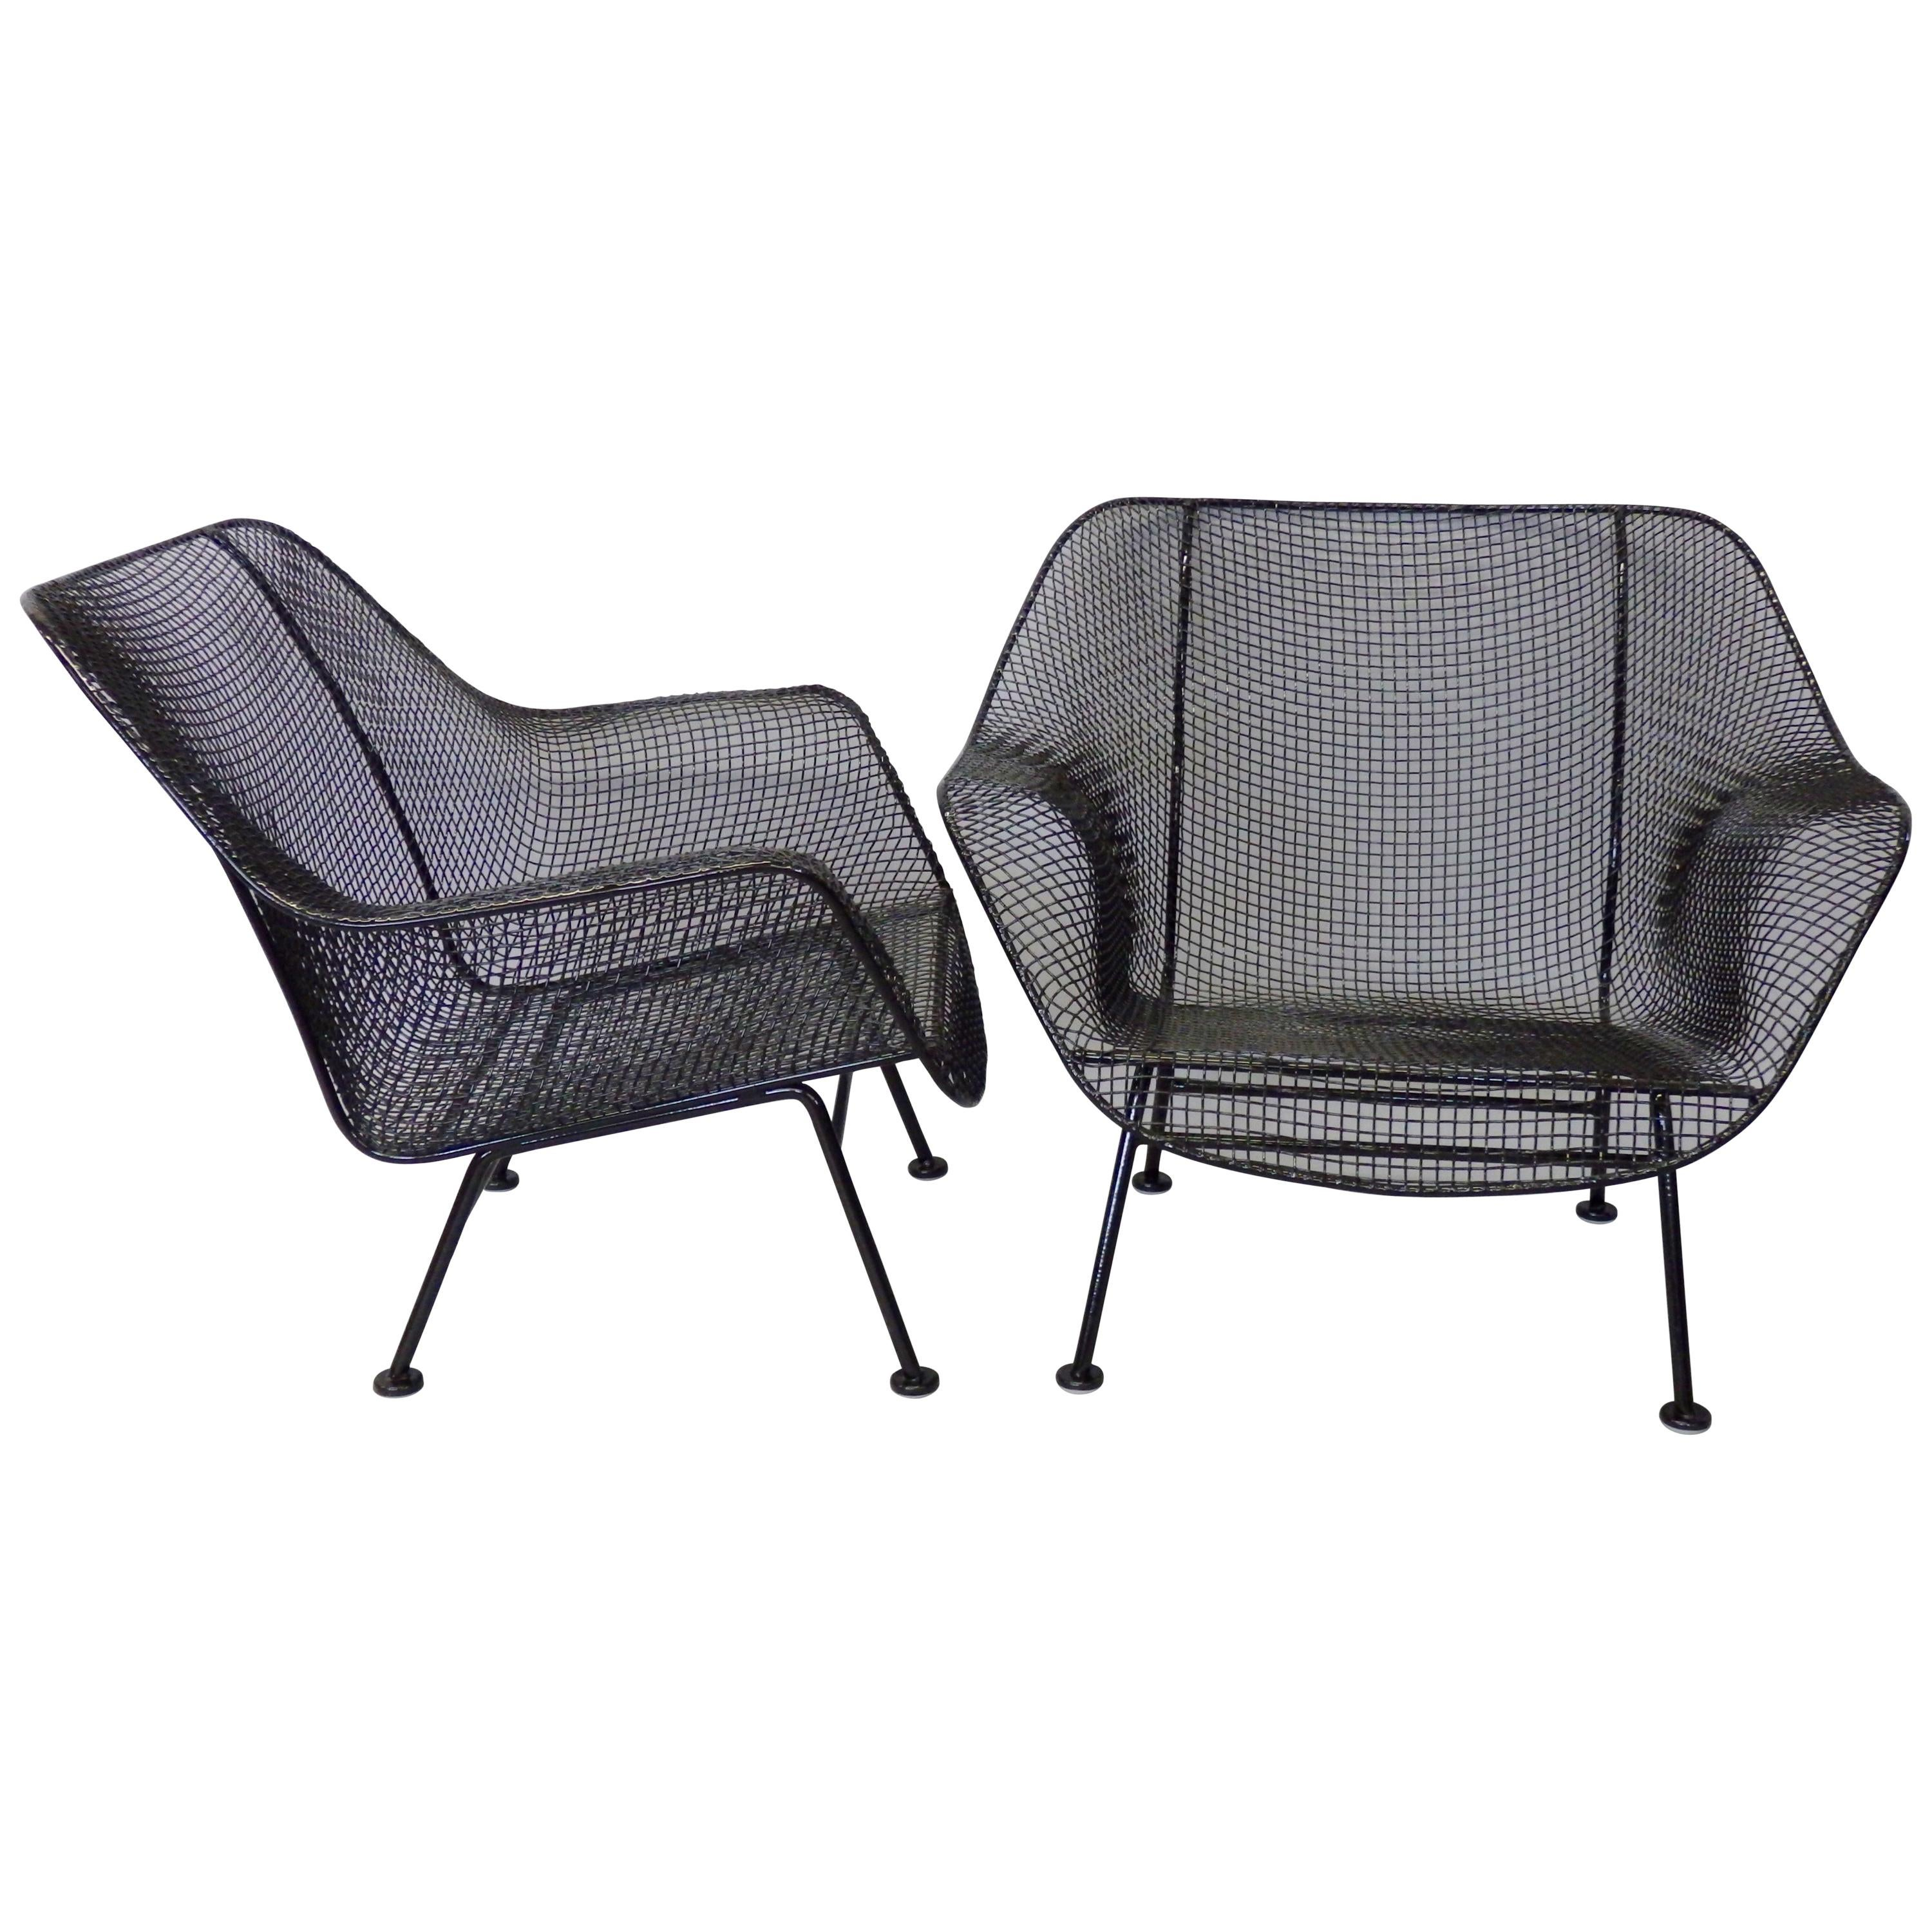 Nicely Restored John Woodard Wrought Iron with Steel Mesh Lounge Chairs